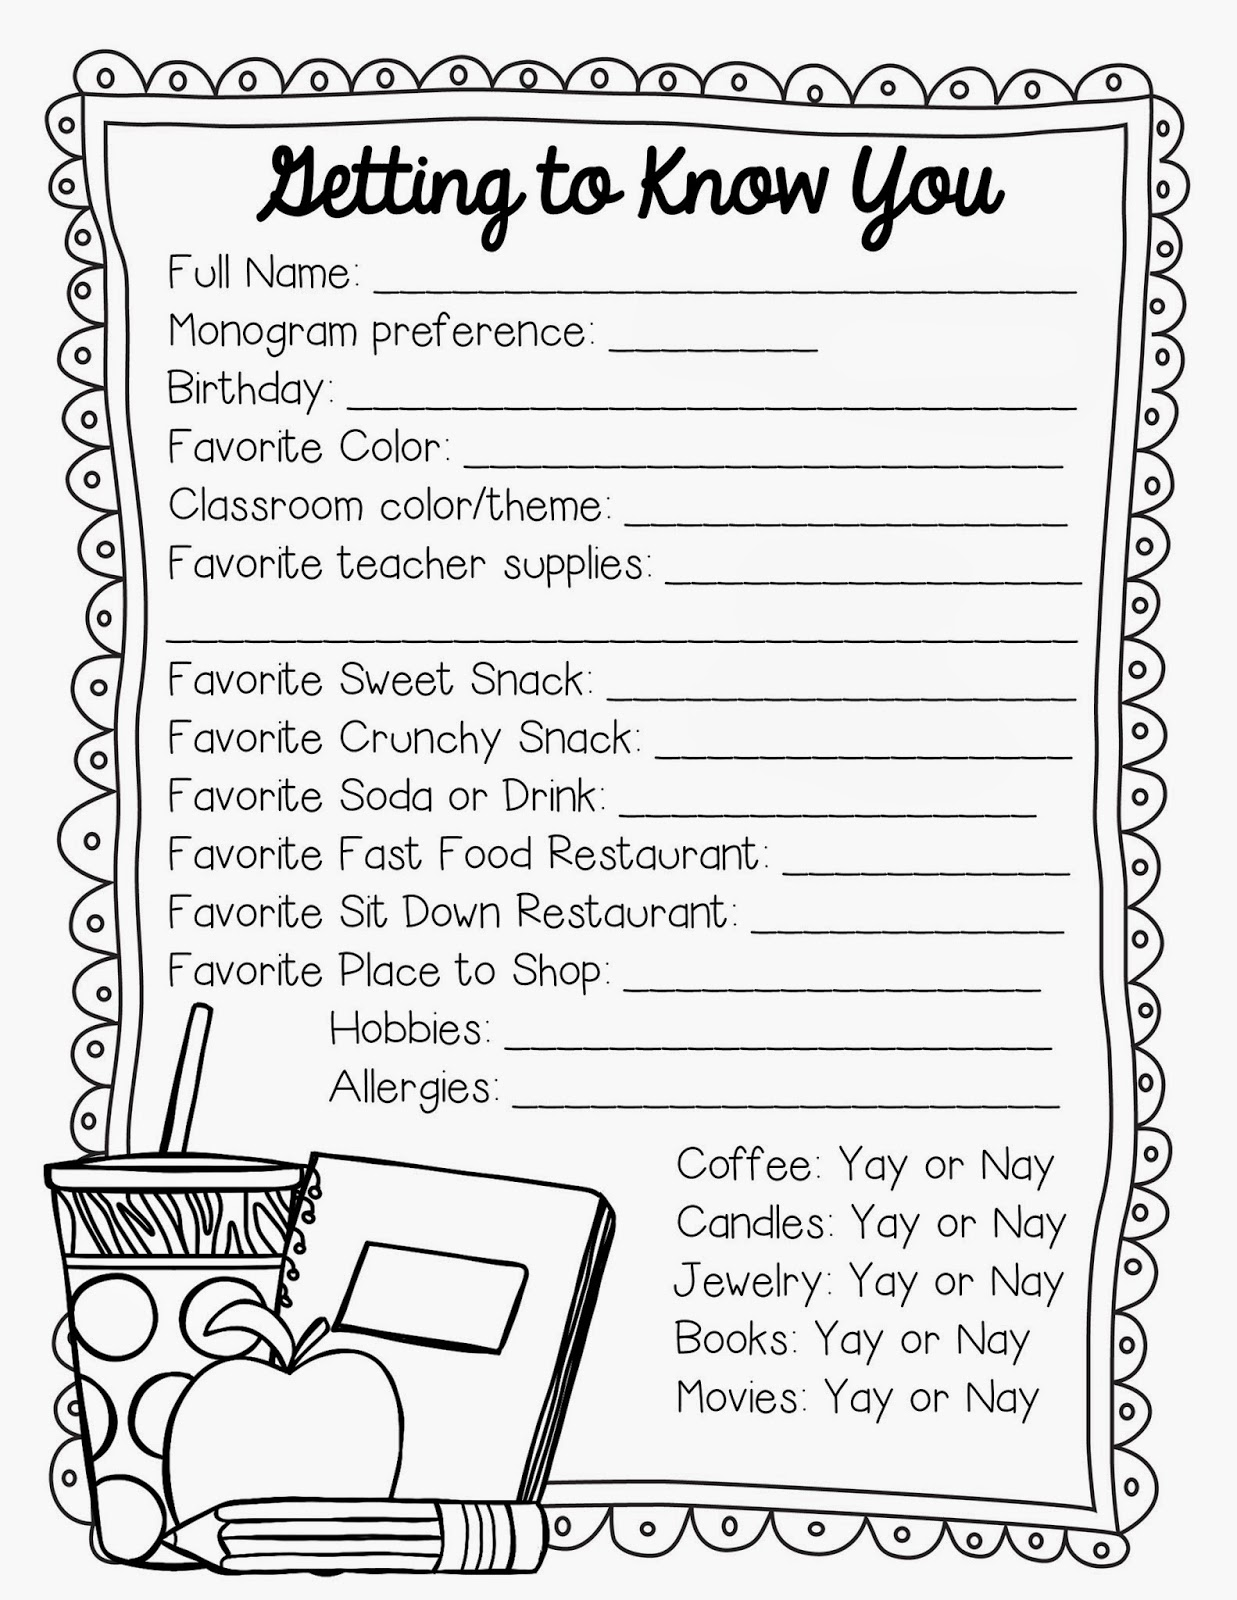 Getting To Know You Worksheets For Kids Free Worksheets Library – Getting to Know You Worksheet